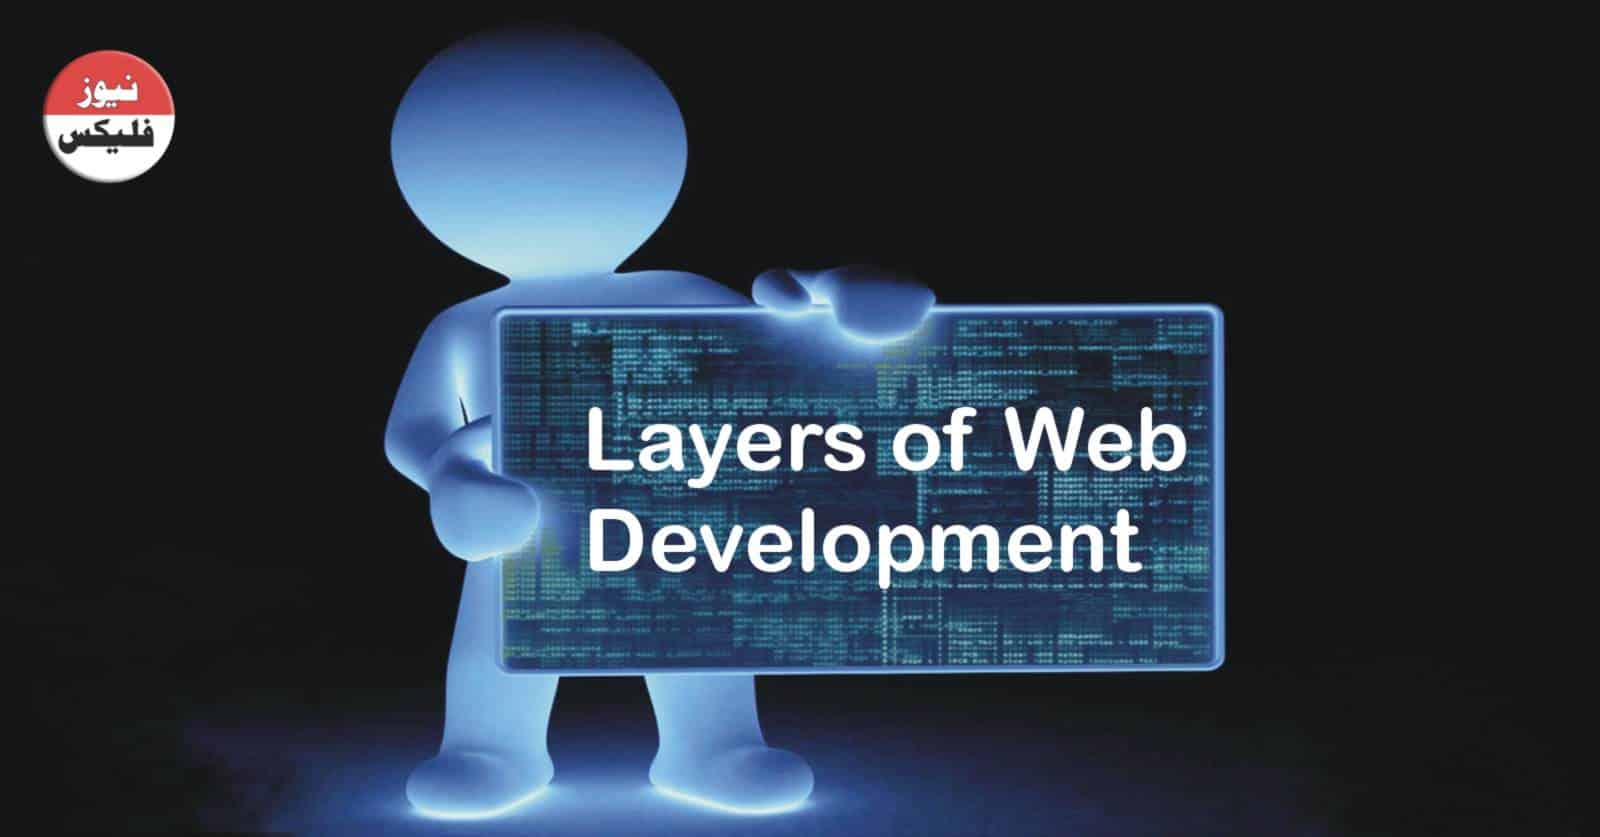 LAYERS OF WEB DEVELOPMENT